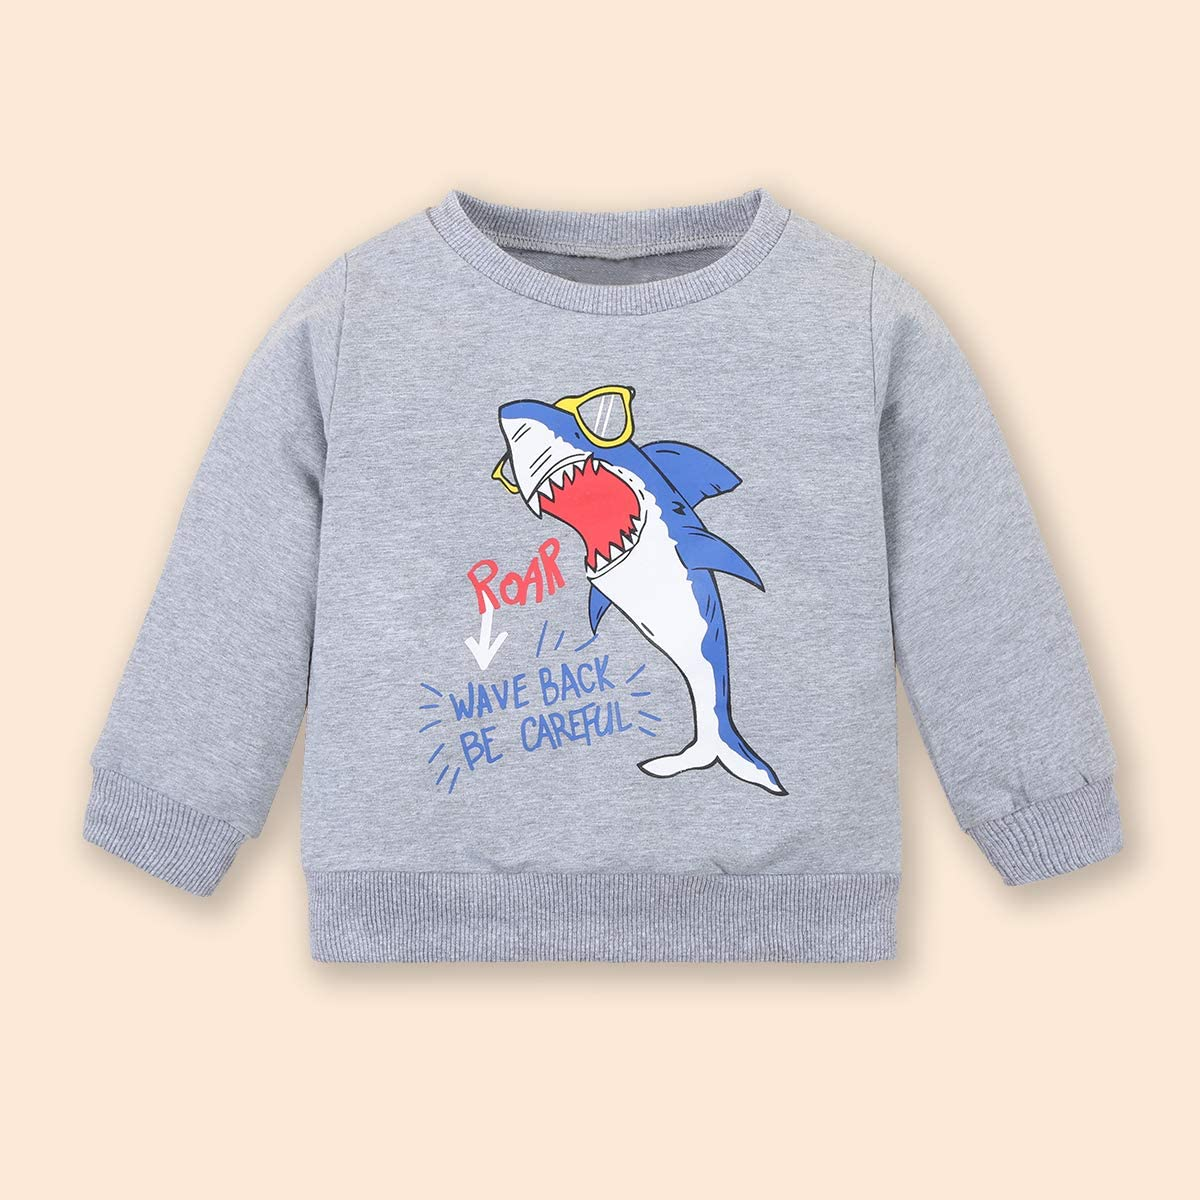 Toddler Boy Clothes Infant Baby Boy Sweatshirt Outfits Tops Pants Set 1-6T